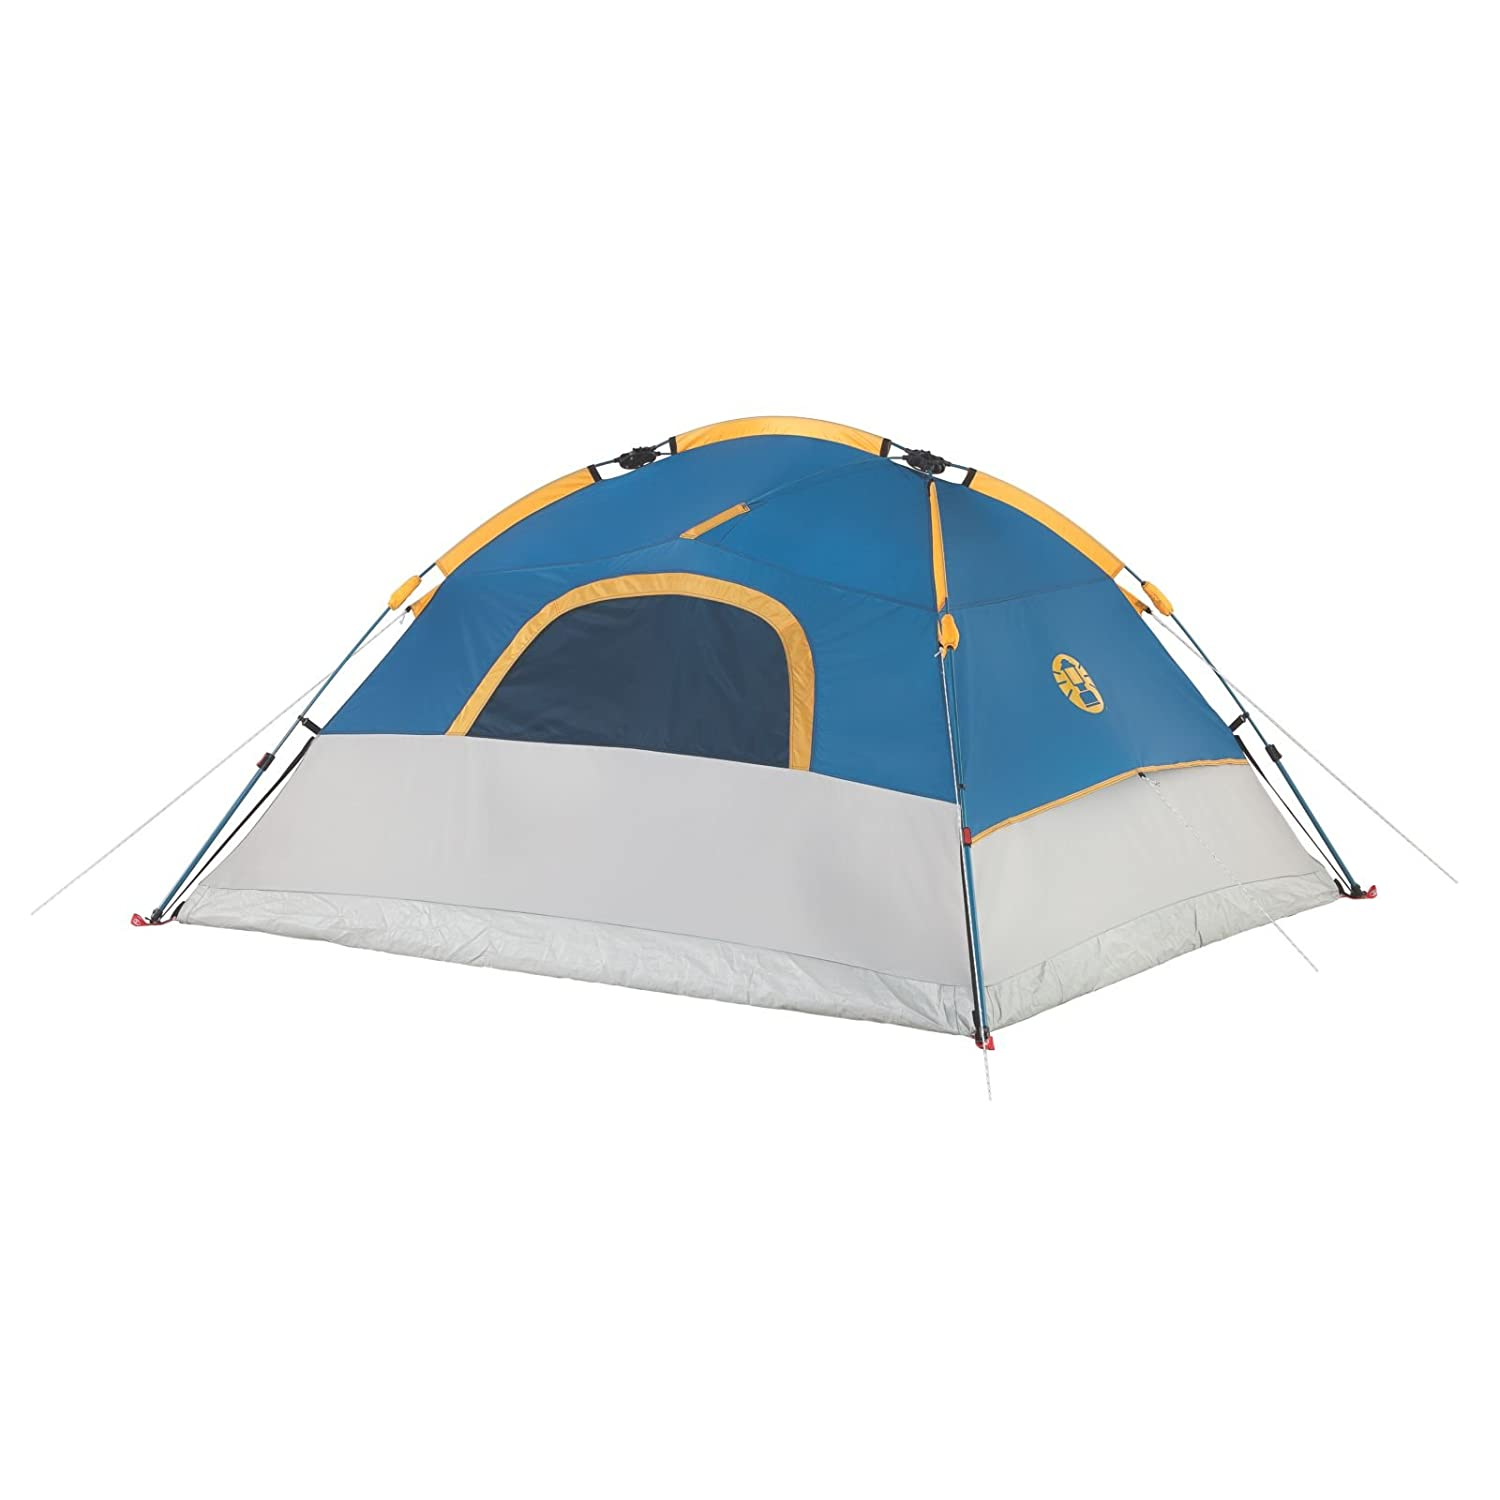 Amazon.com : Coleman Camping 4 Person Flatiron Instant Dome Tent : Sports &  Outdoors